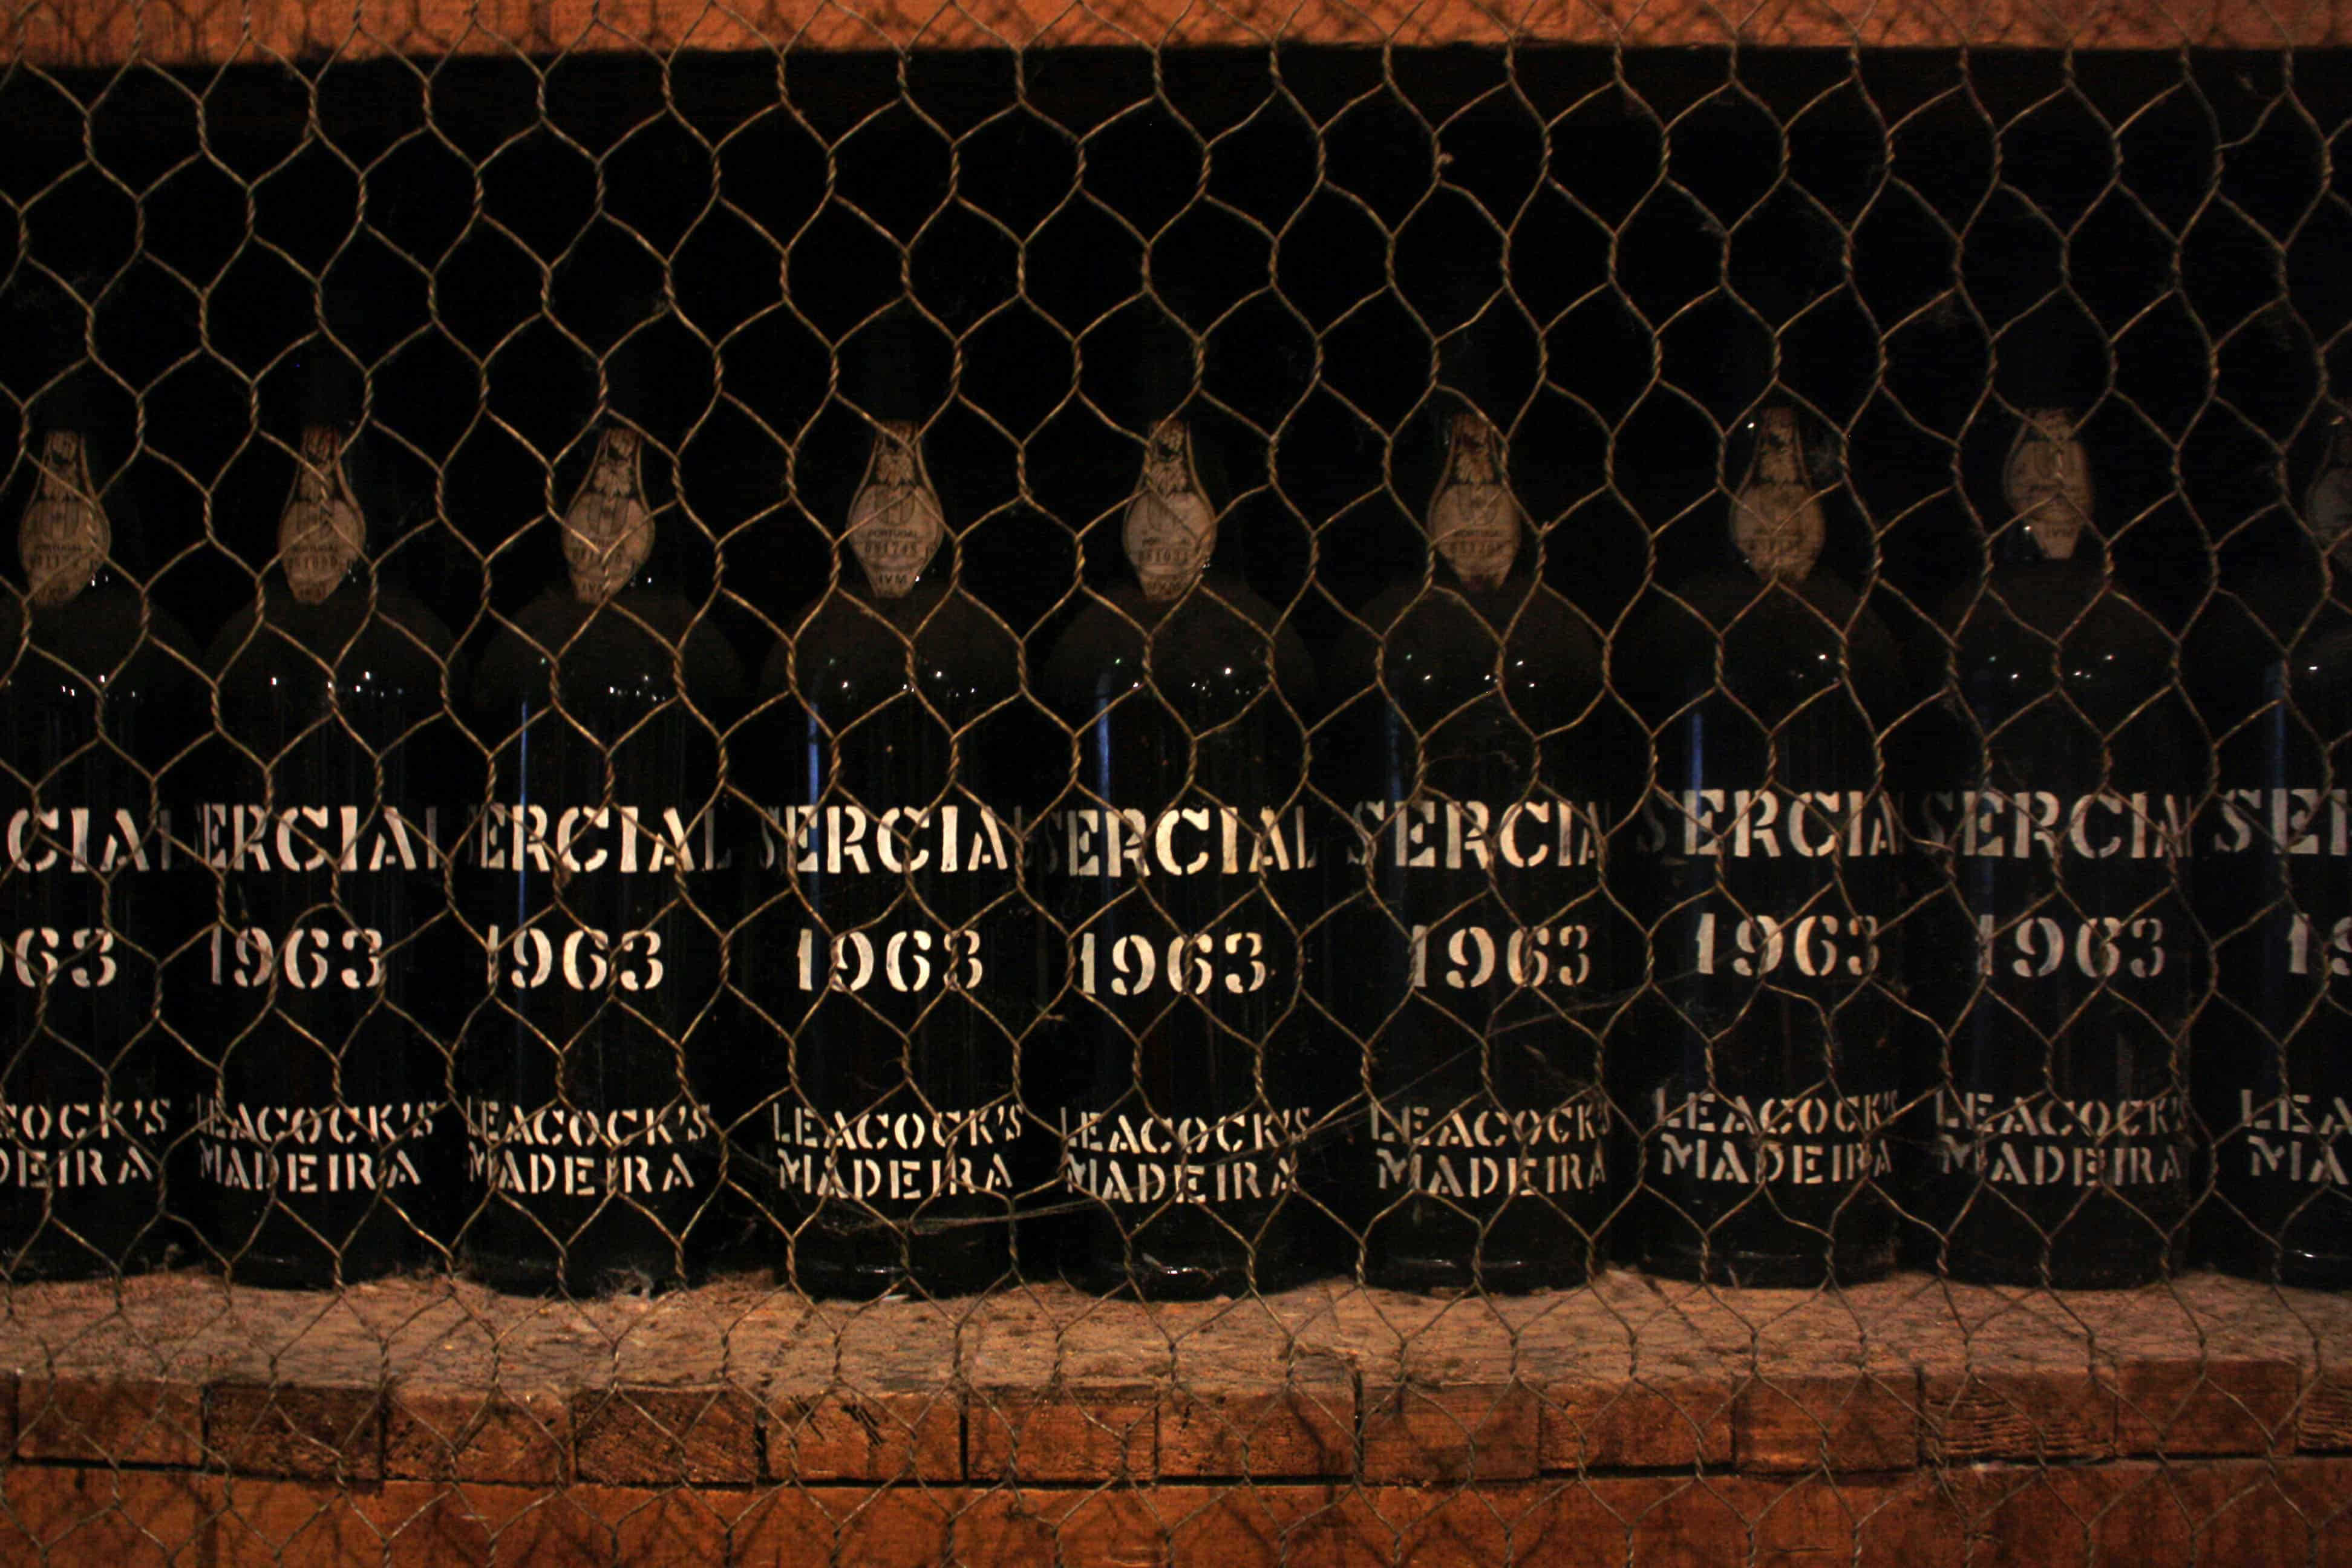 Bottles of Madeira wine, Blandy's